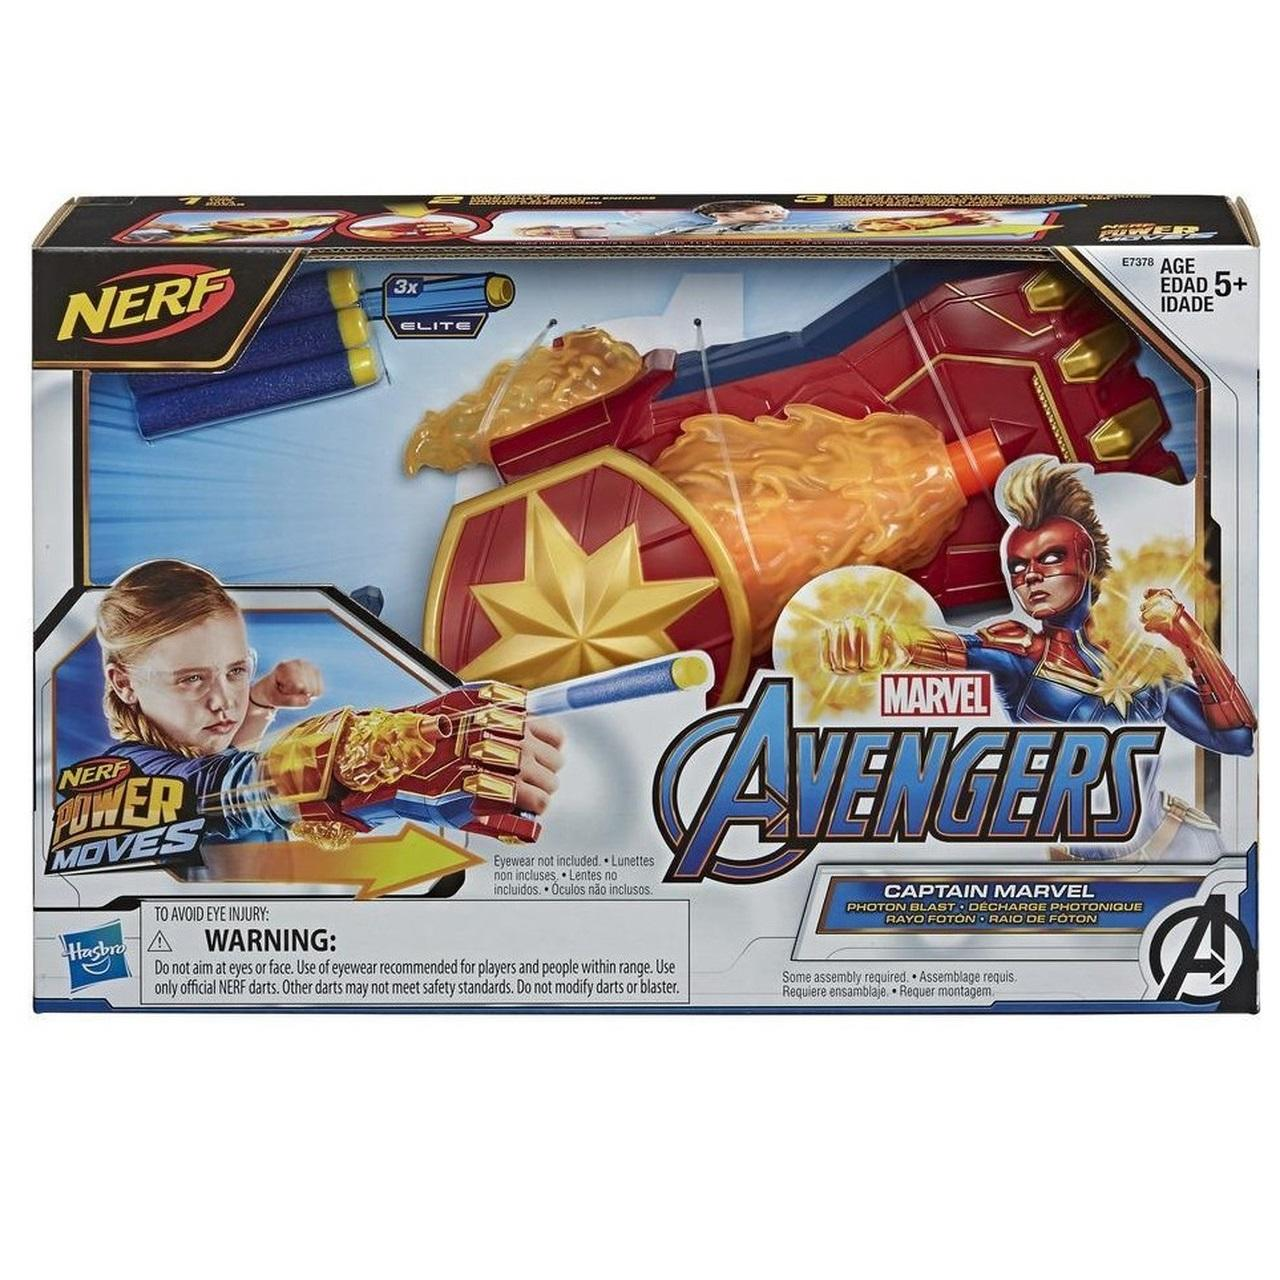 Marvel Avengers Captain Marvel Photon Blaster2